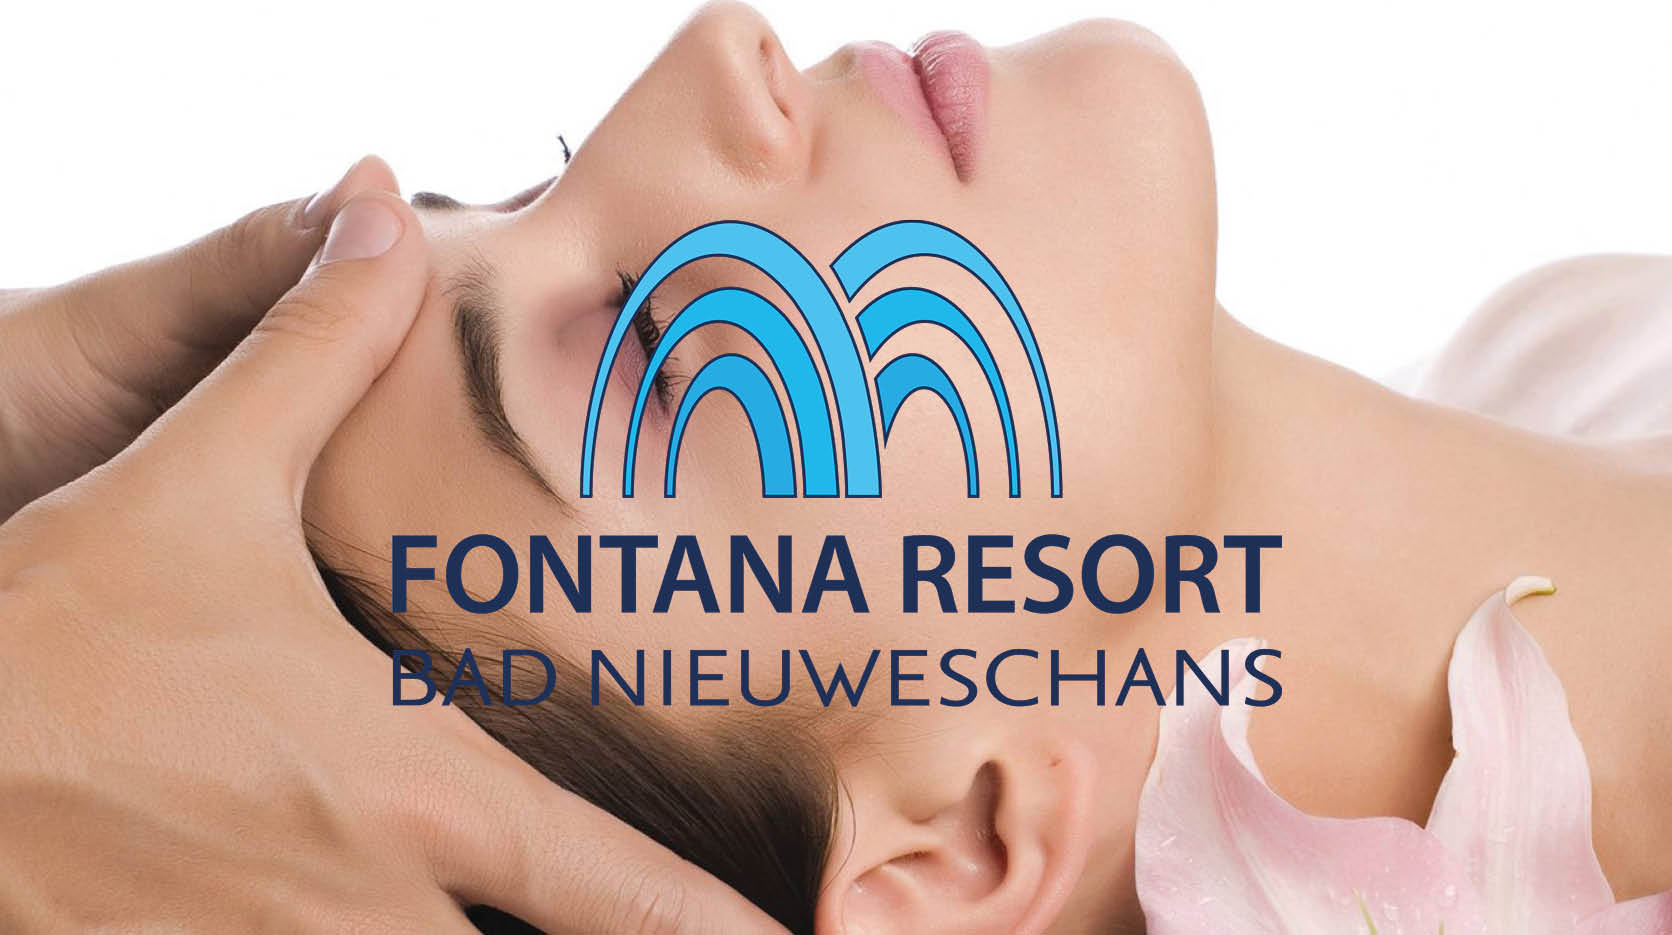 Fontana Resort Bad Nieuweschans